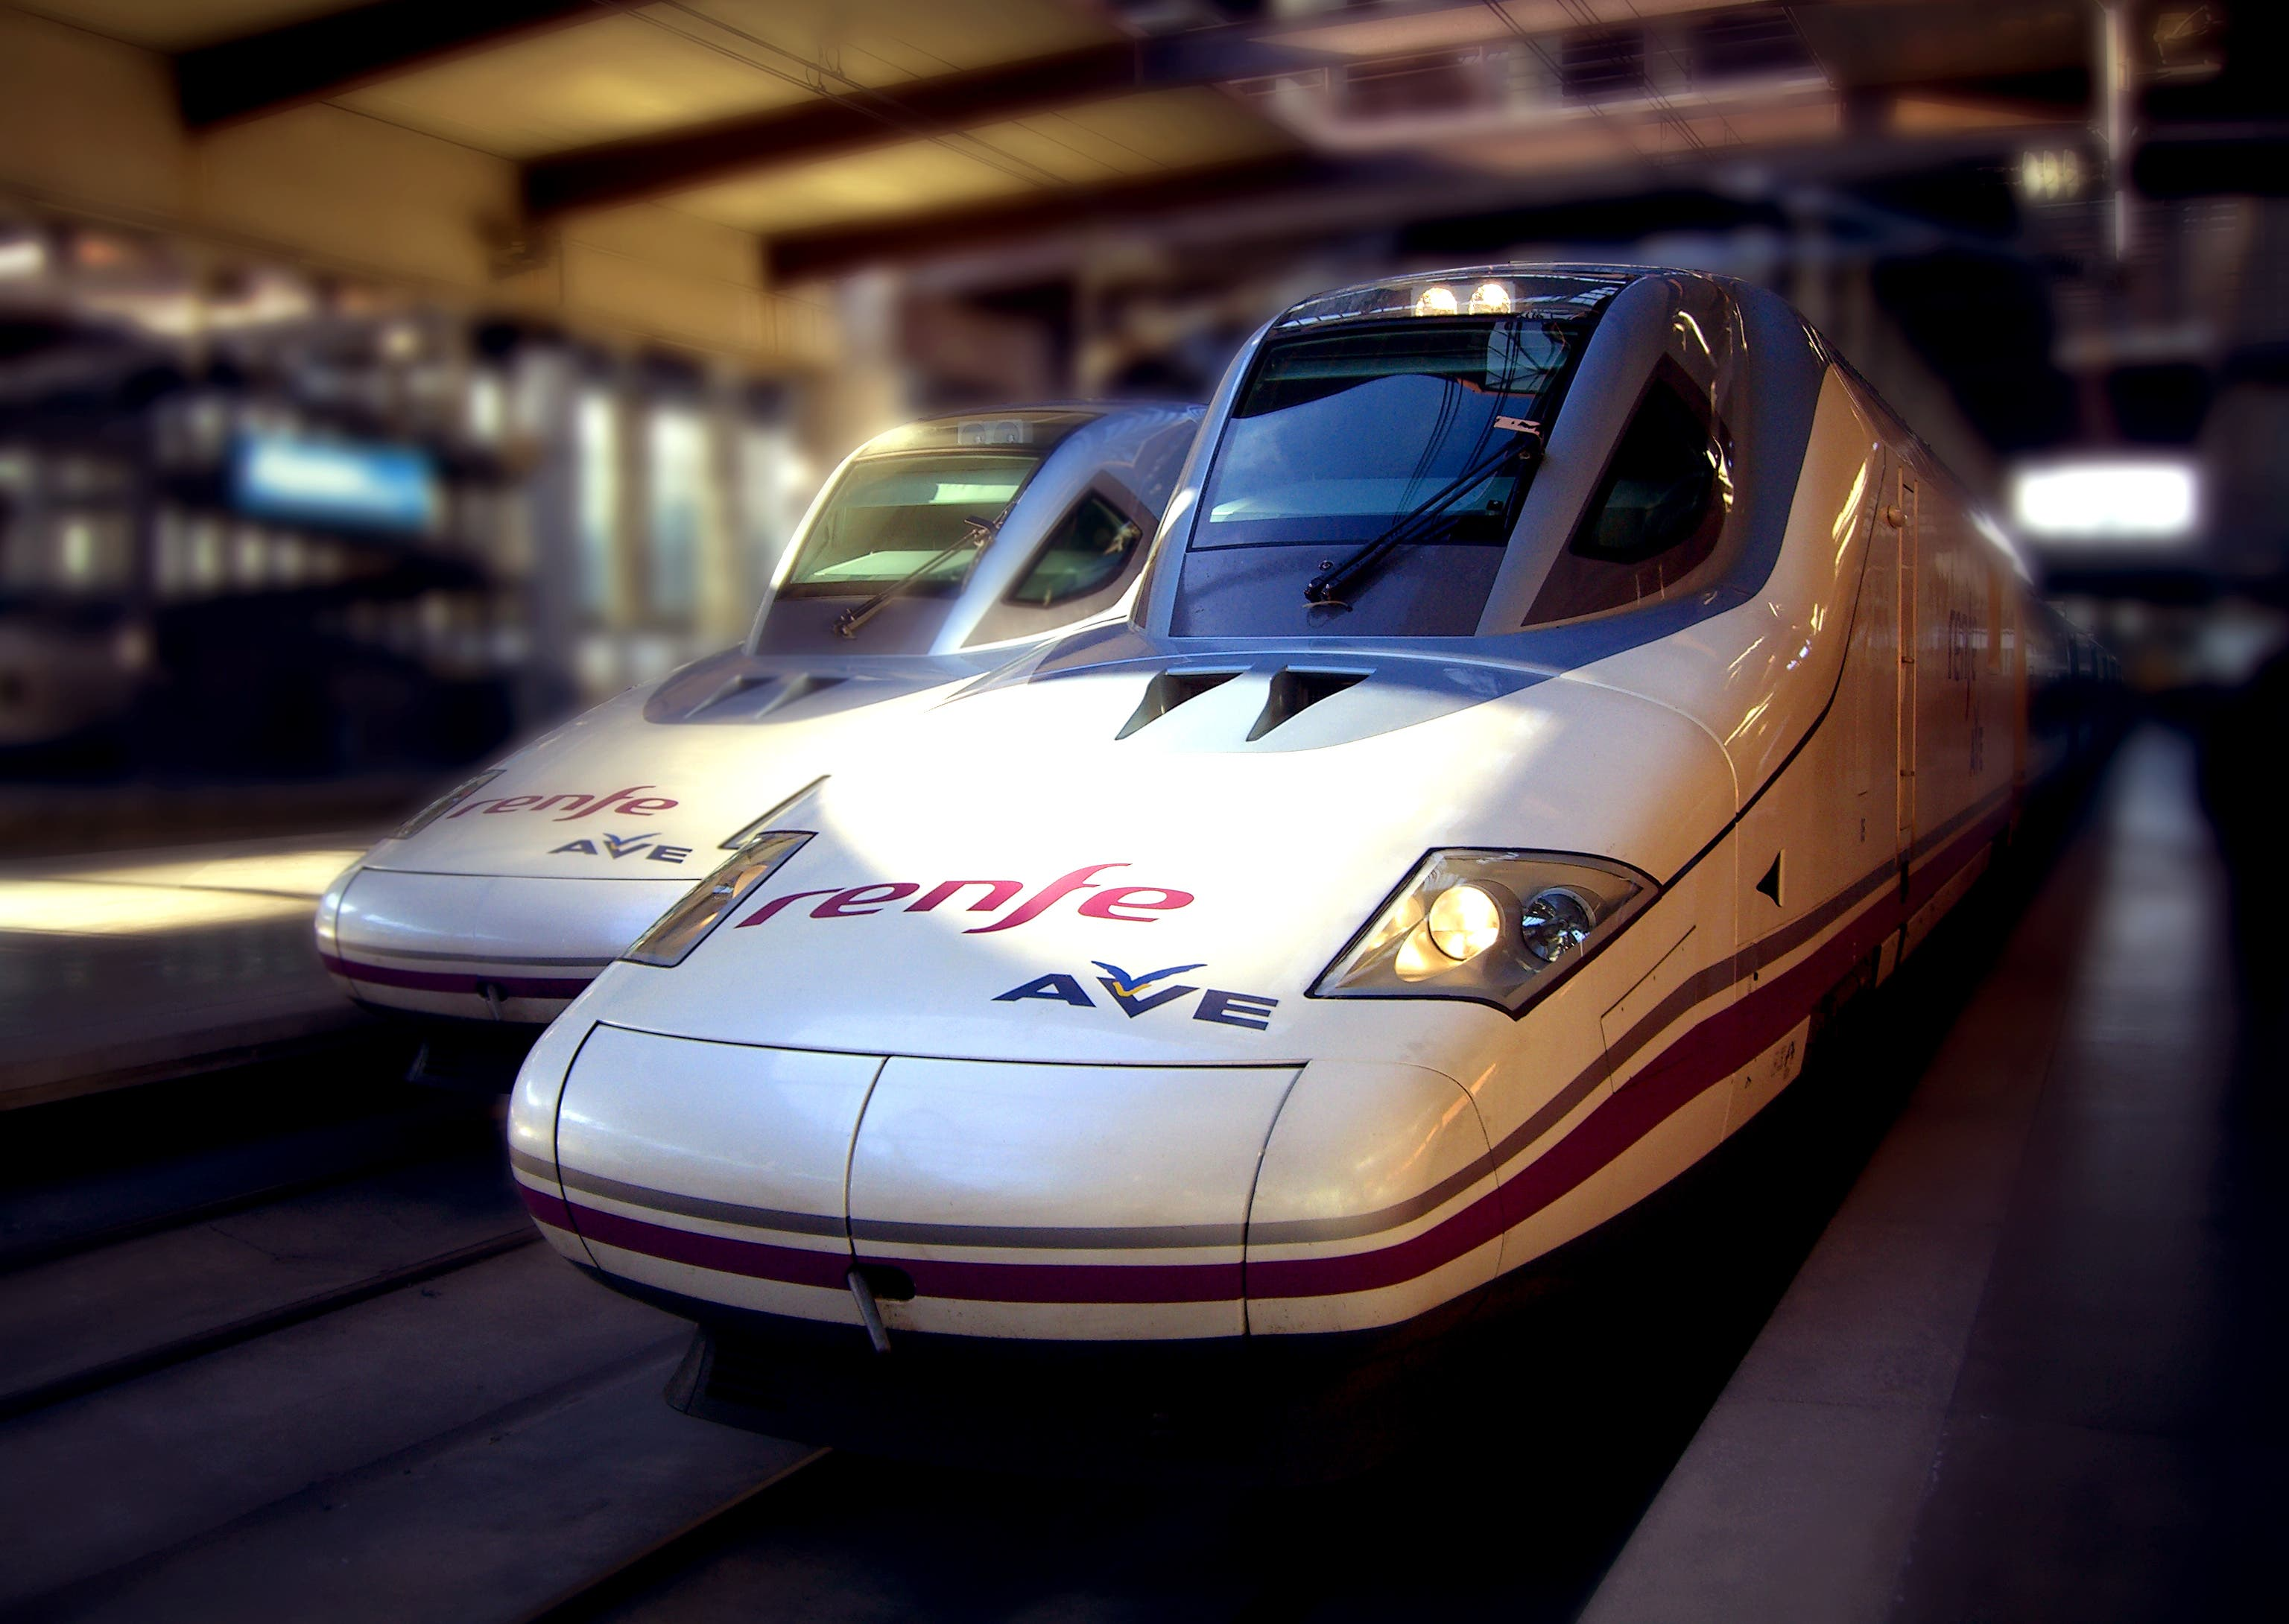 End of the line for AVE high speed rail link between Sevilla and Malaga